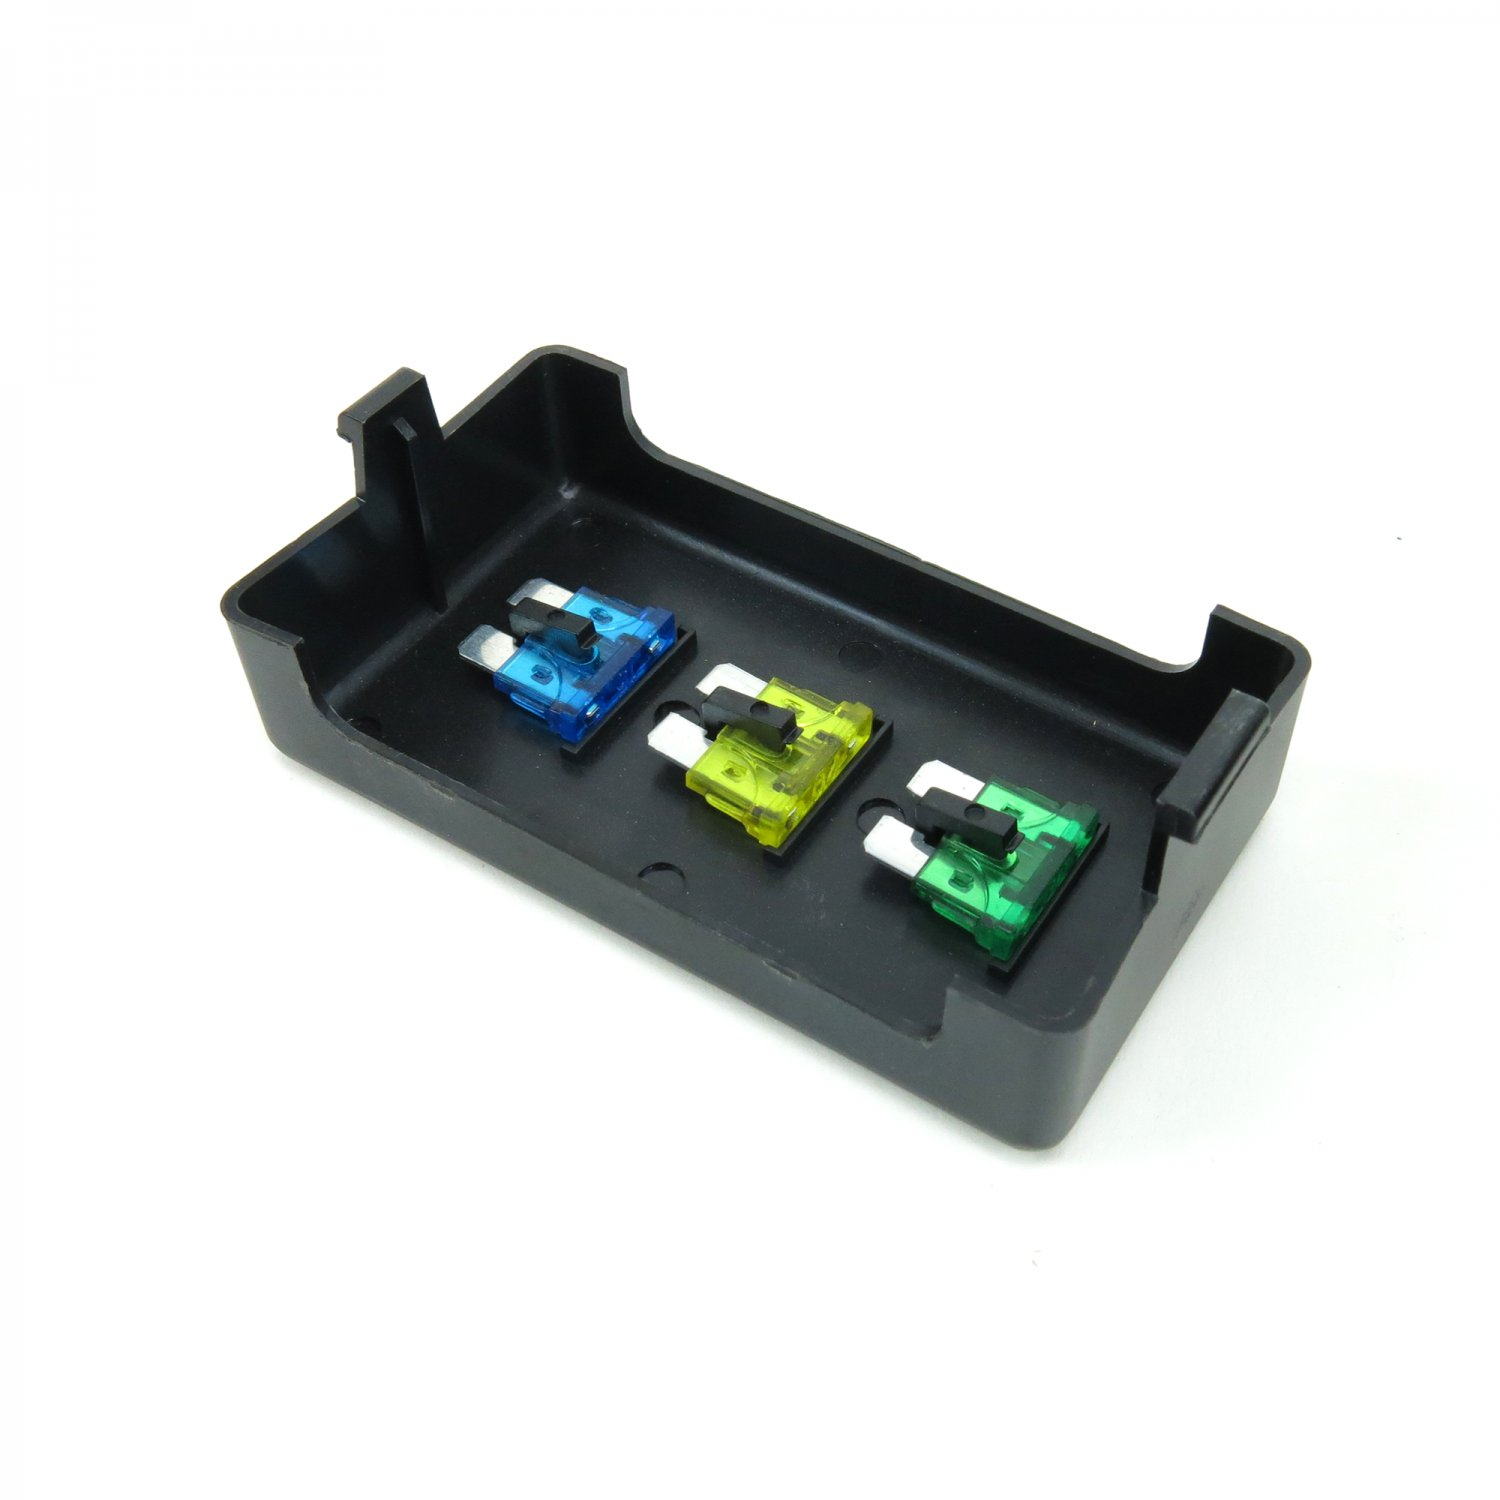 Wire Harness Fuse Block Upgrade Kit For 52 79 Mg Austin Stranded Accessory To Box Fuses 12 Circuits 10 Prewired Terminals 11 No Dimmer Switch Headlight Ignition Turn Signal Flasher Yes